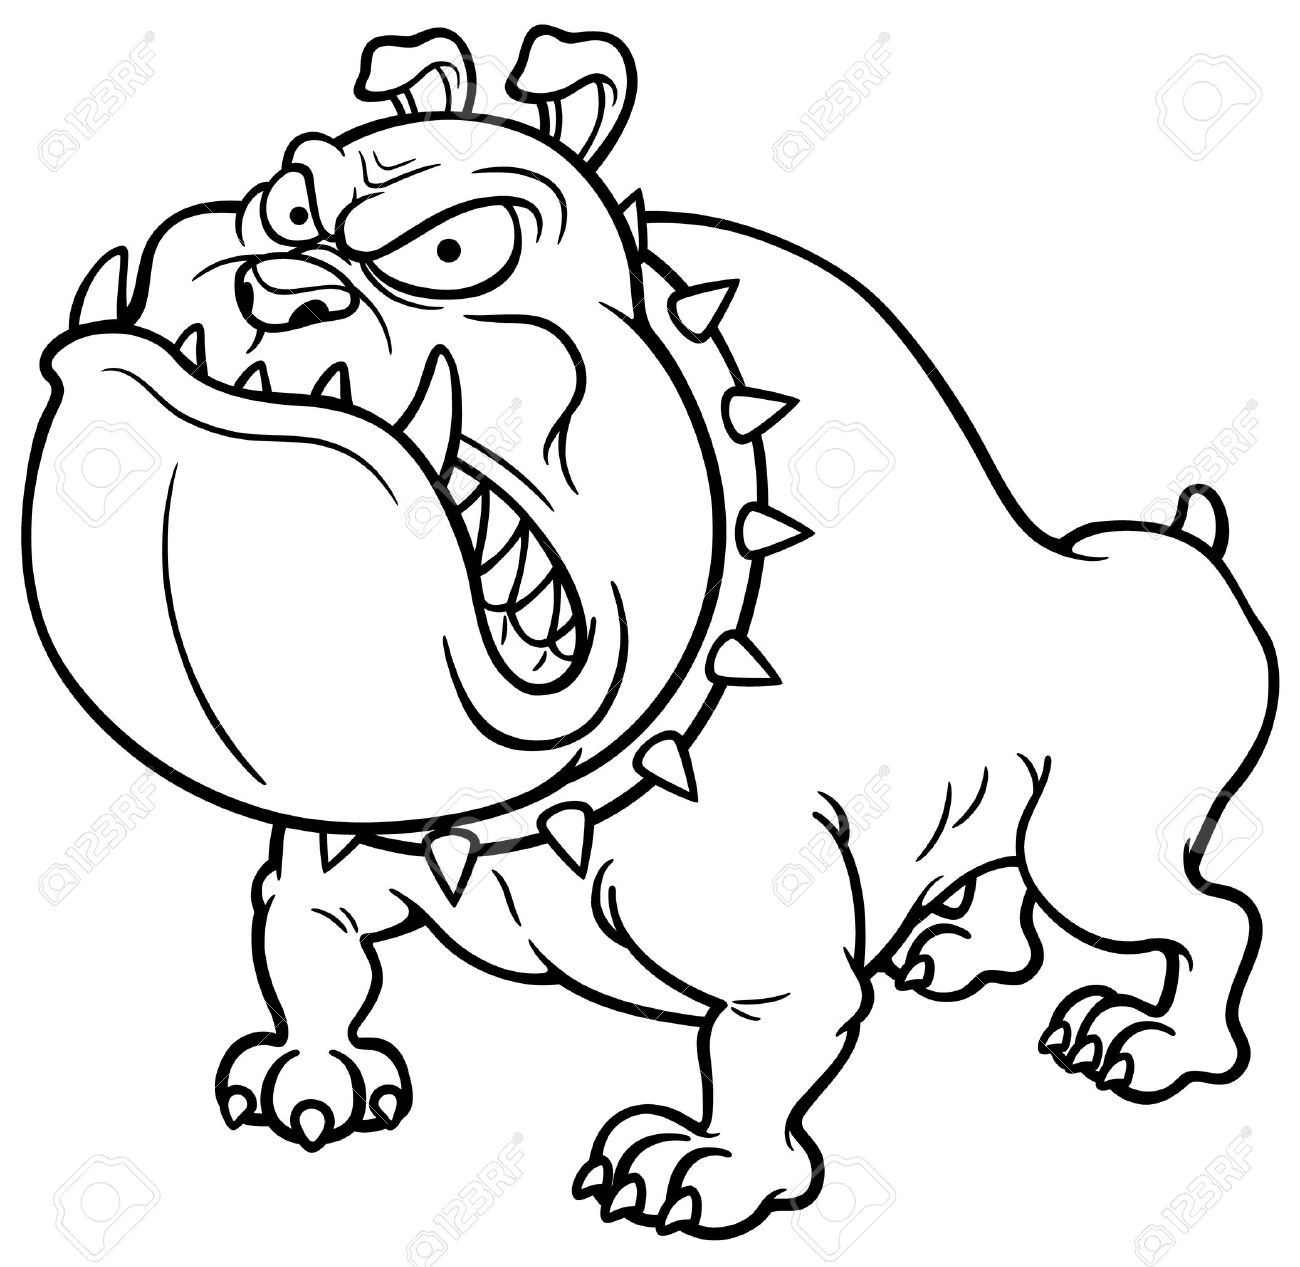 Vector Illustration Of Angry Dog Coloring Book Royalty Free